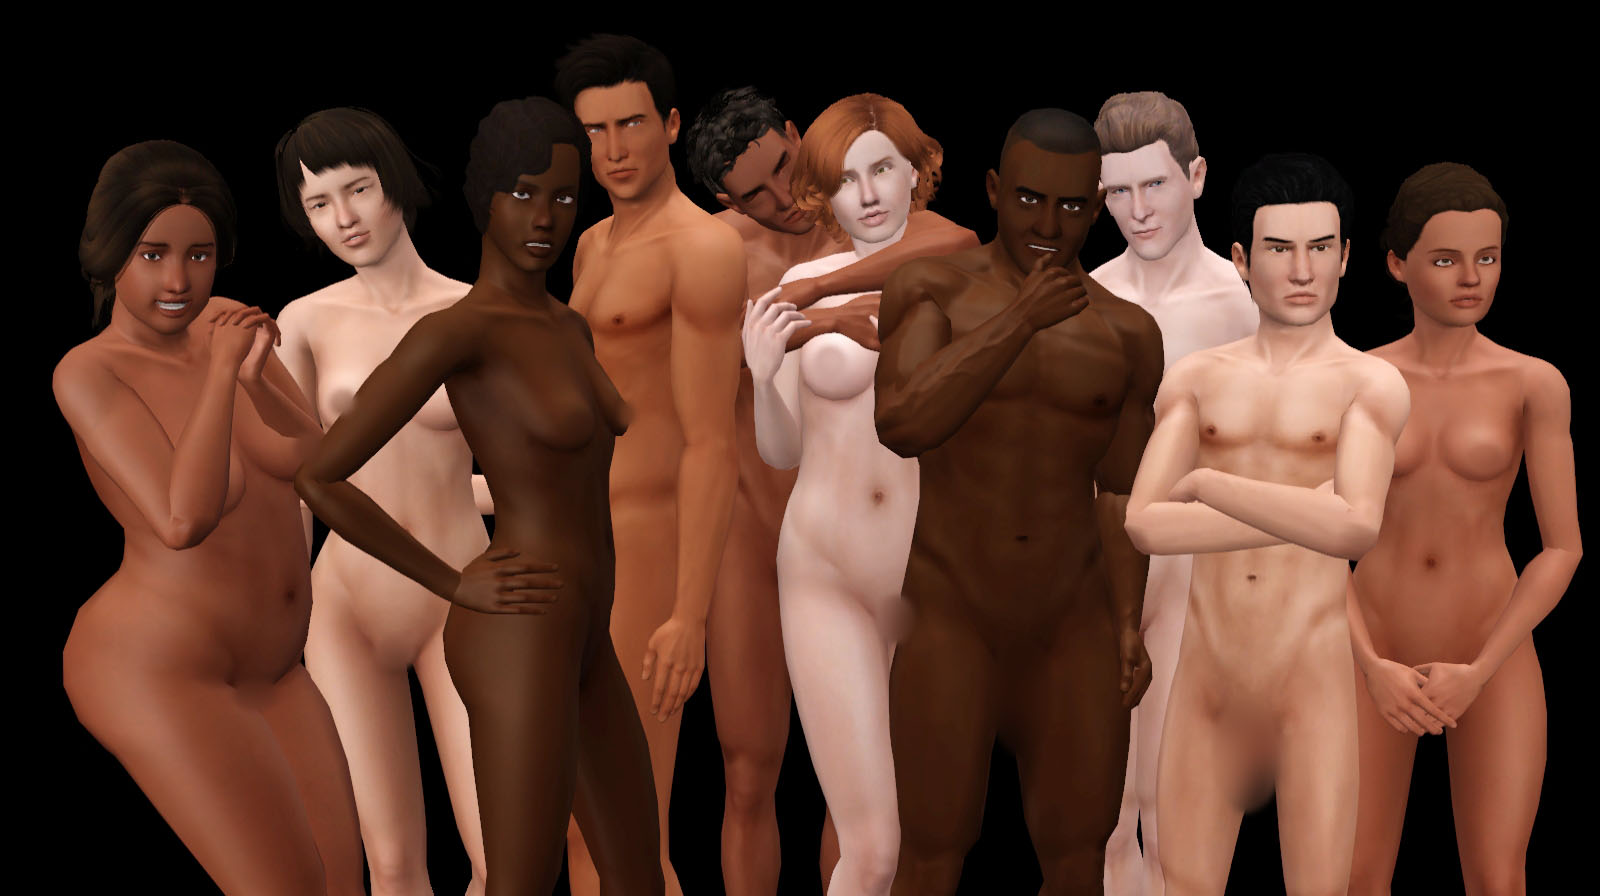 Sims 3 men naked mod sexy picture